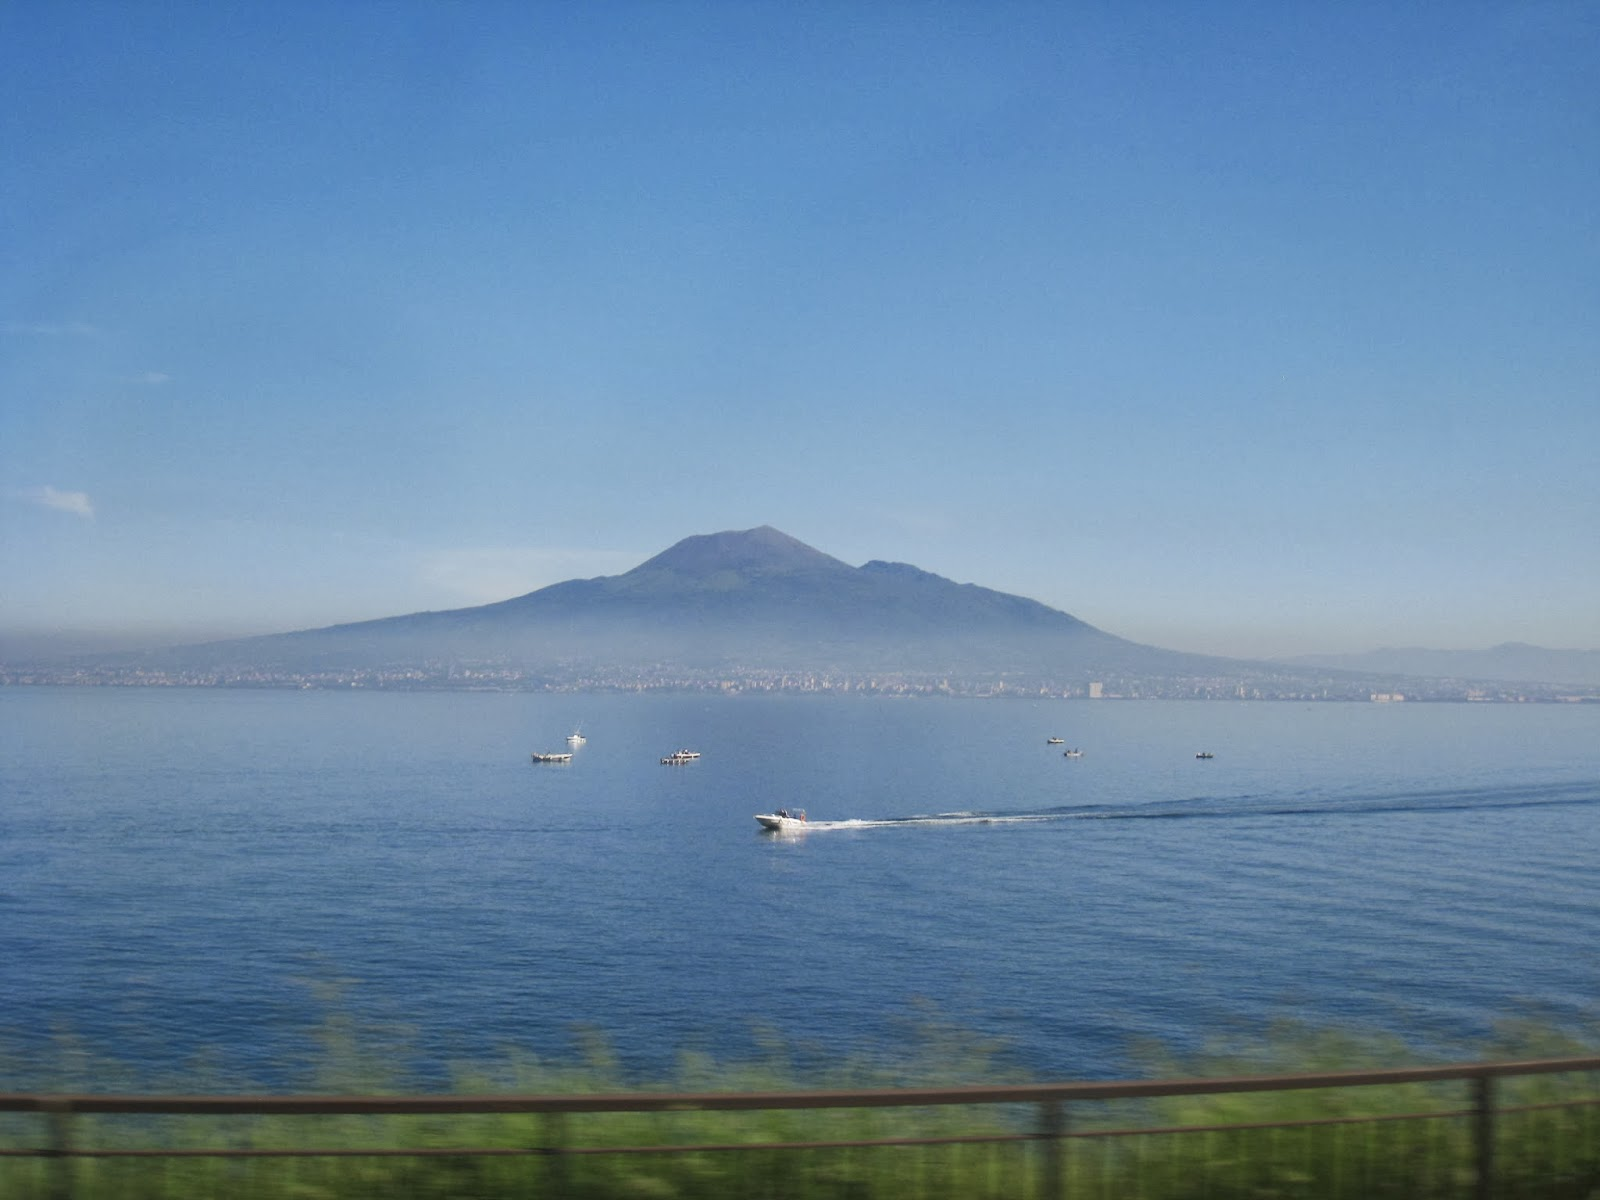 Seaside-of-Italy-Mount-Vesuvius-the-Volcano-Naples